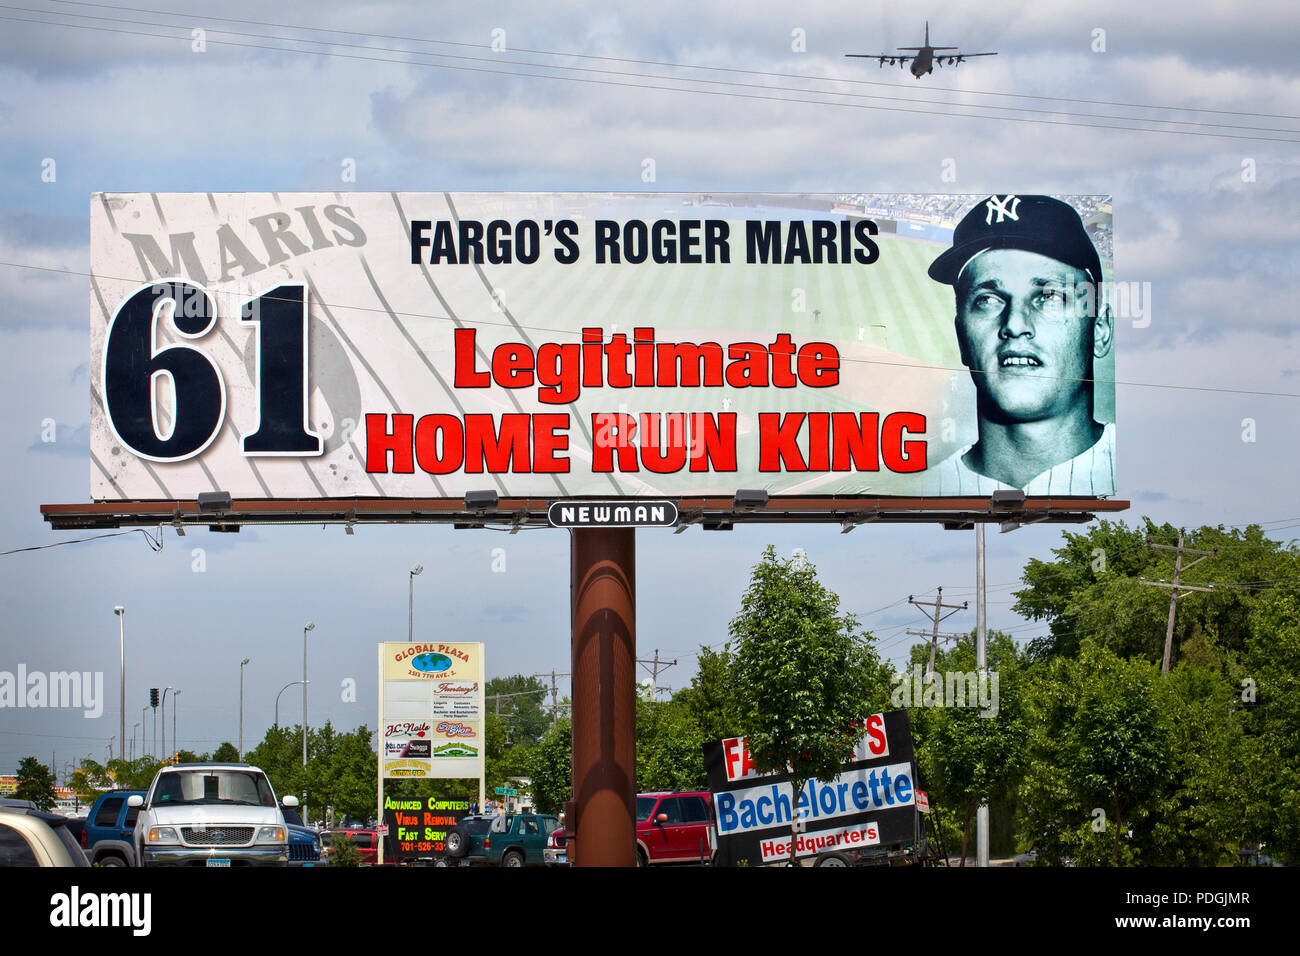 Billboard in Fargo, North Dakota honoring Fargo's native son and New York Yankees slugger as being the legitimate home run king with 61 home runs in 1 - Stock Image